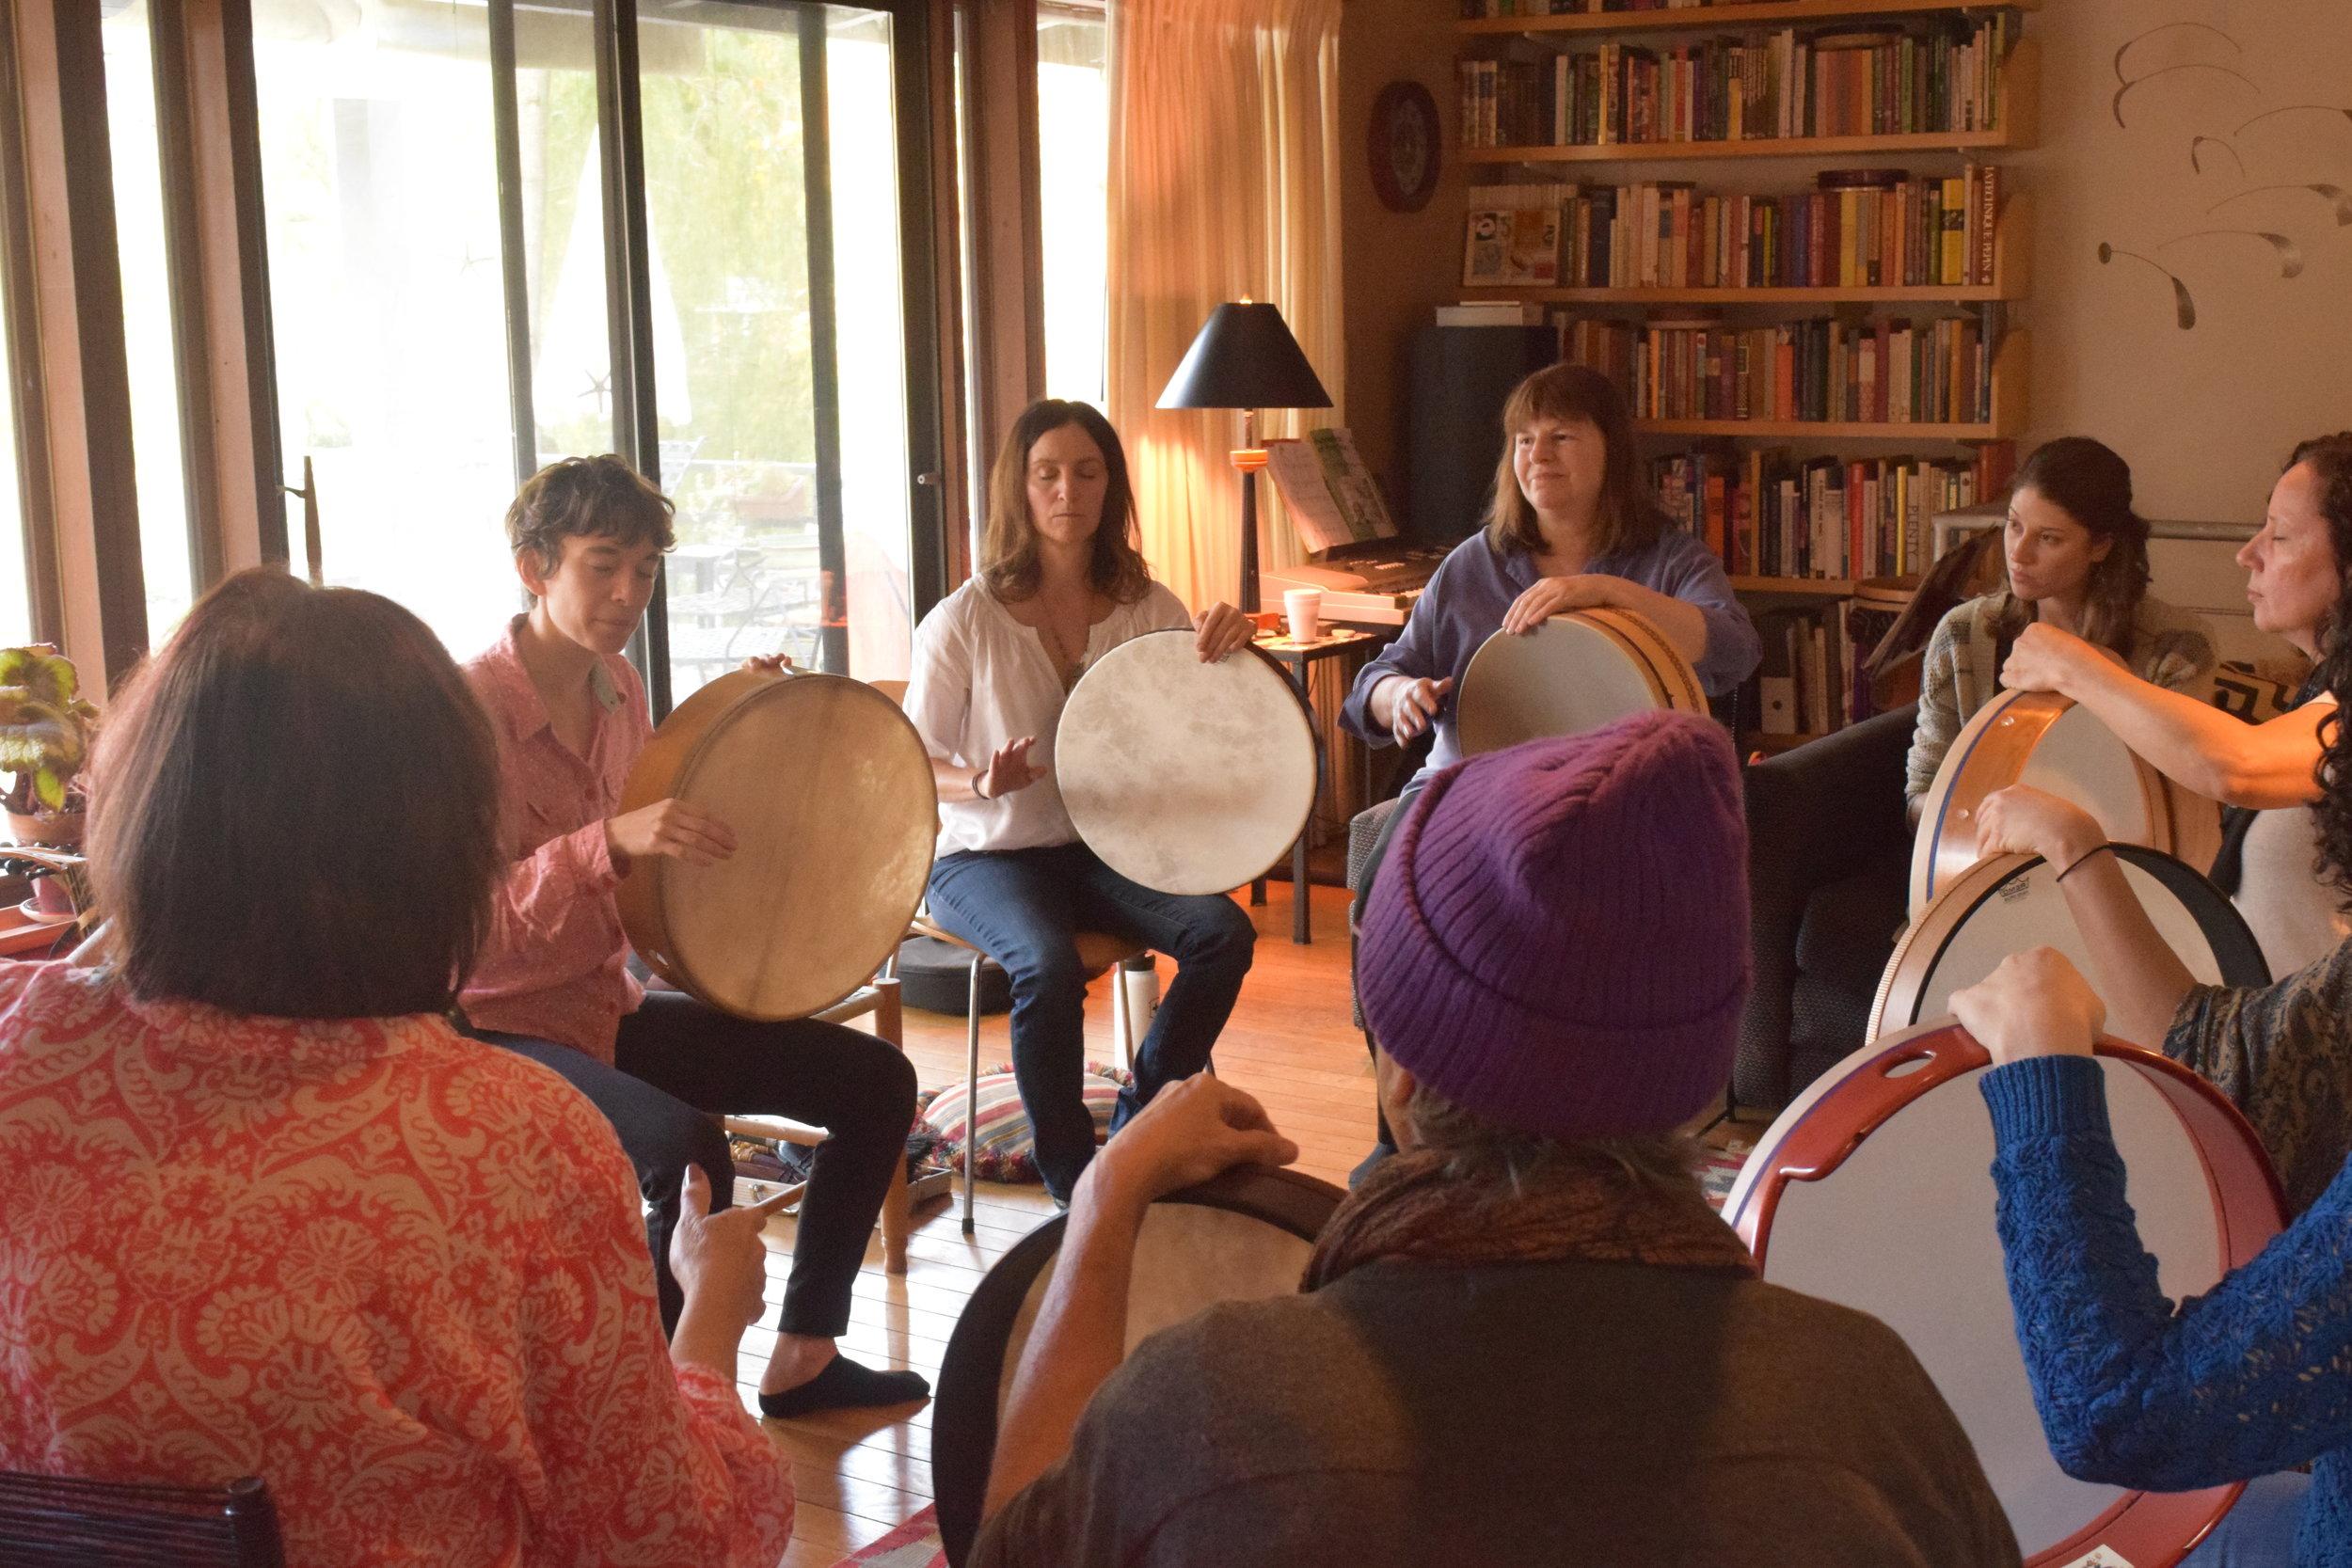 FRAME DRUM - MONDAYS 7-8PM @ Upper West Side, $30This is a women's class for both beginners and intermediate players of the frame drum. We will explore technique of frame drum (open position and lap position), popular rhythms from around the world, improvisation and performance. We will also explore meditation and trance.